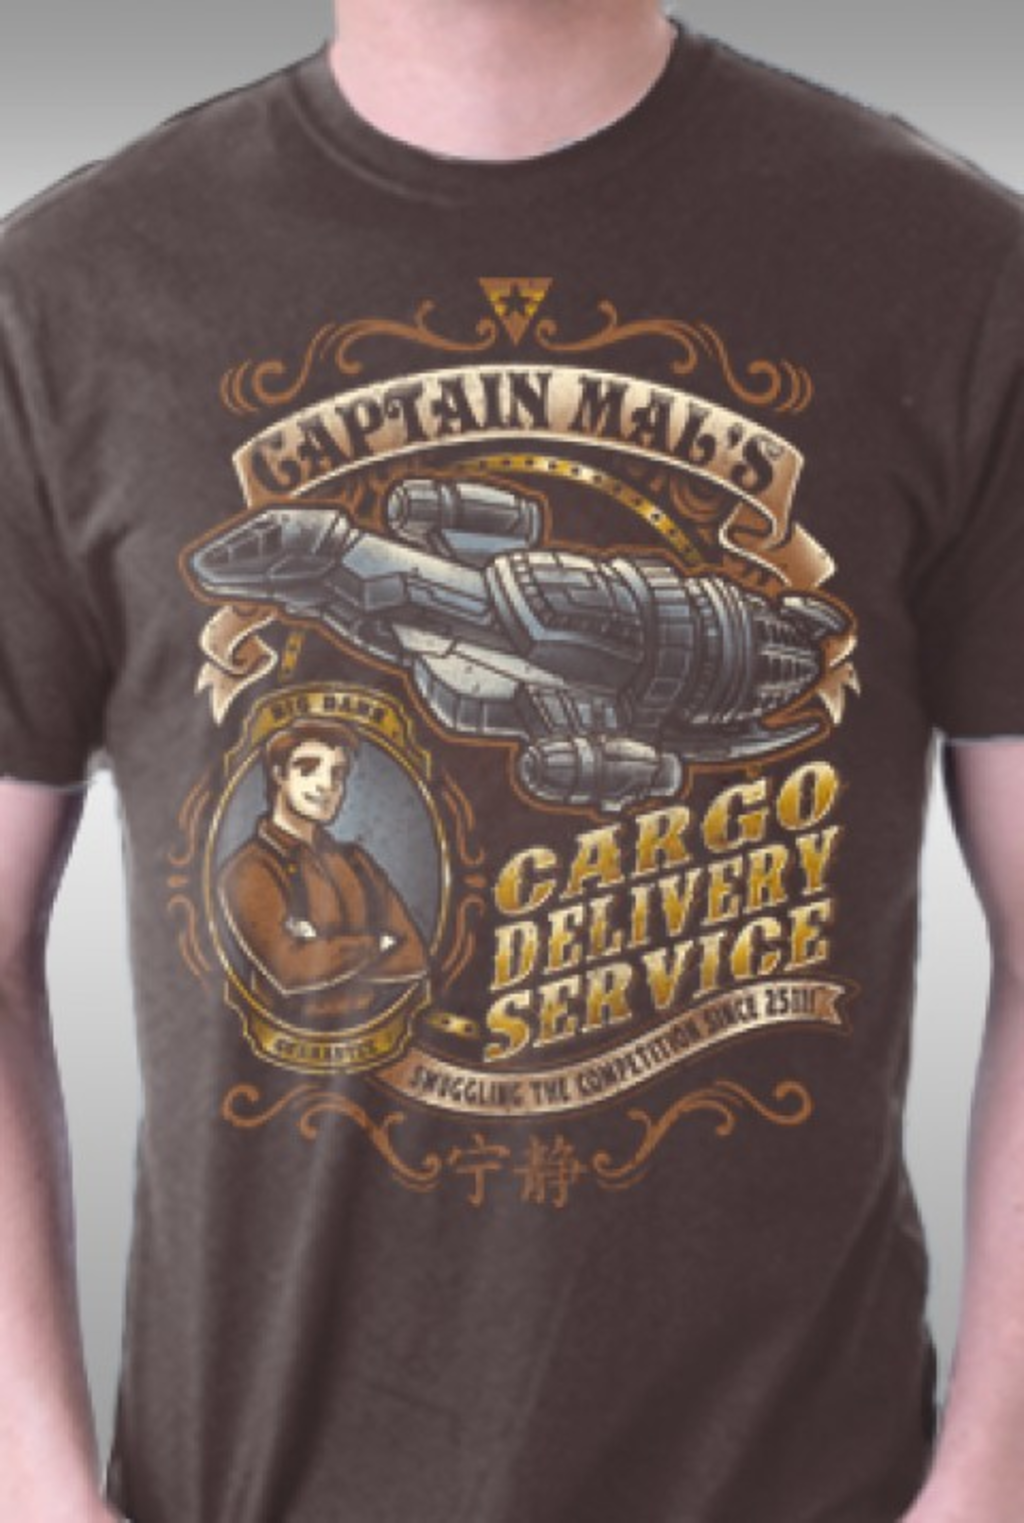 TeeFury: Captain Tight Pants Delivery